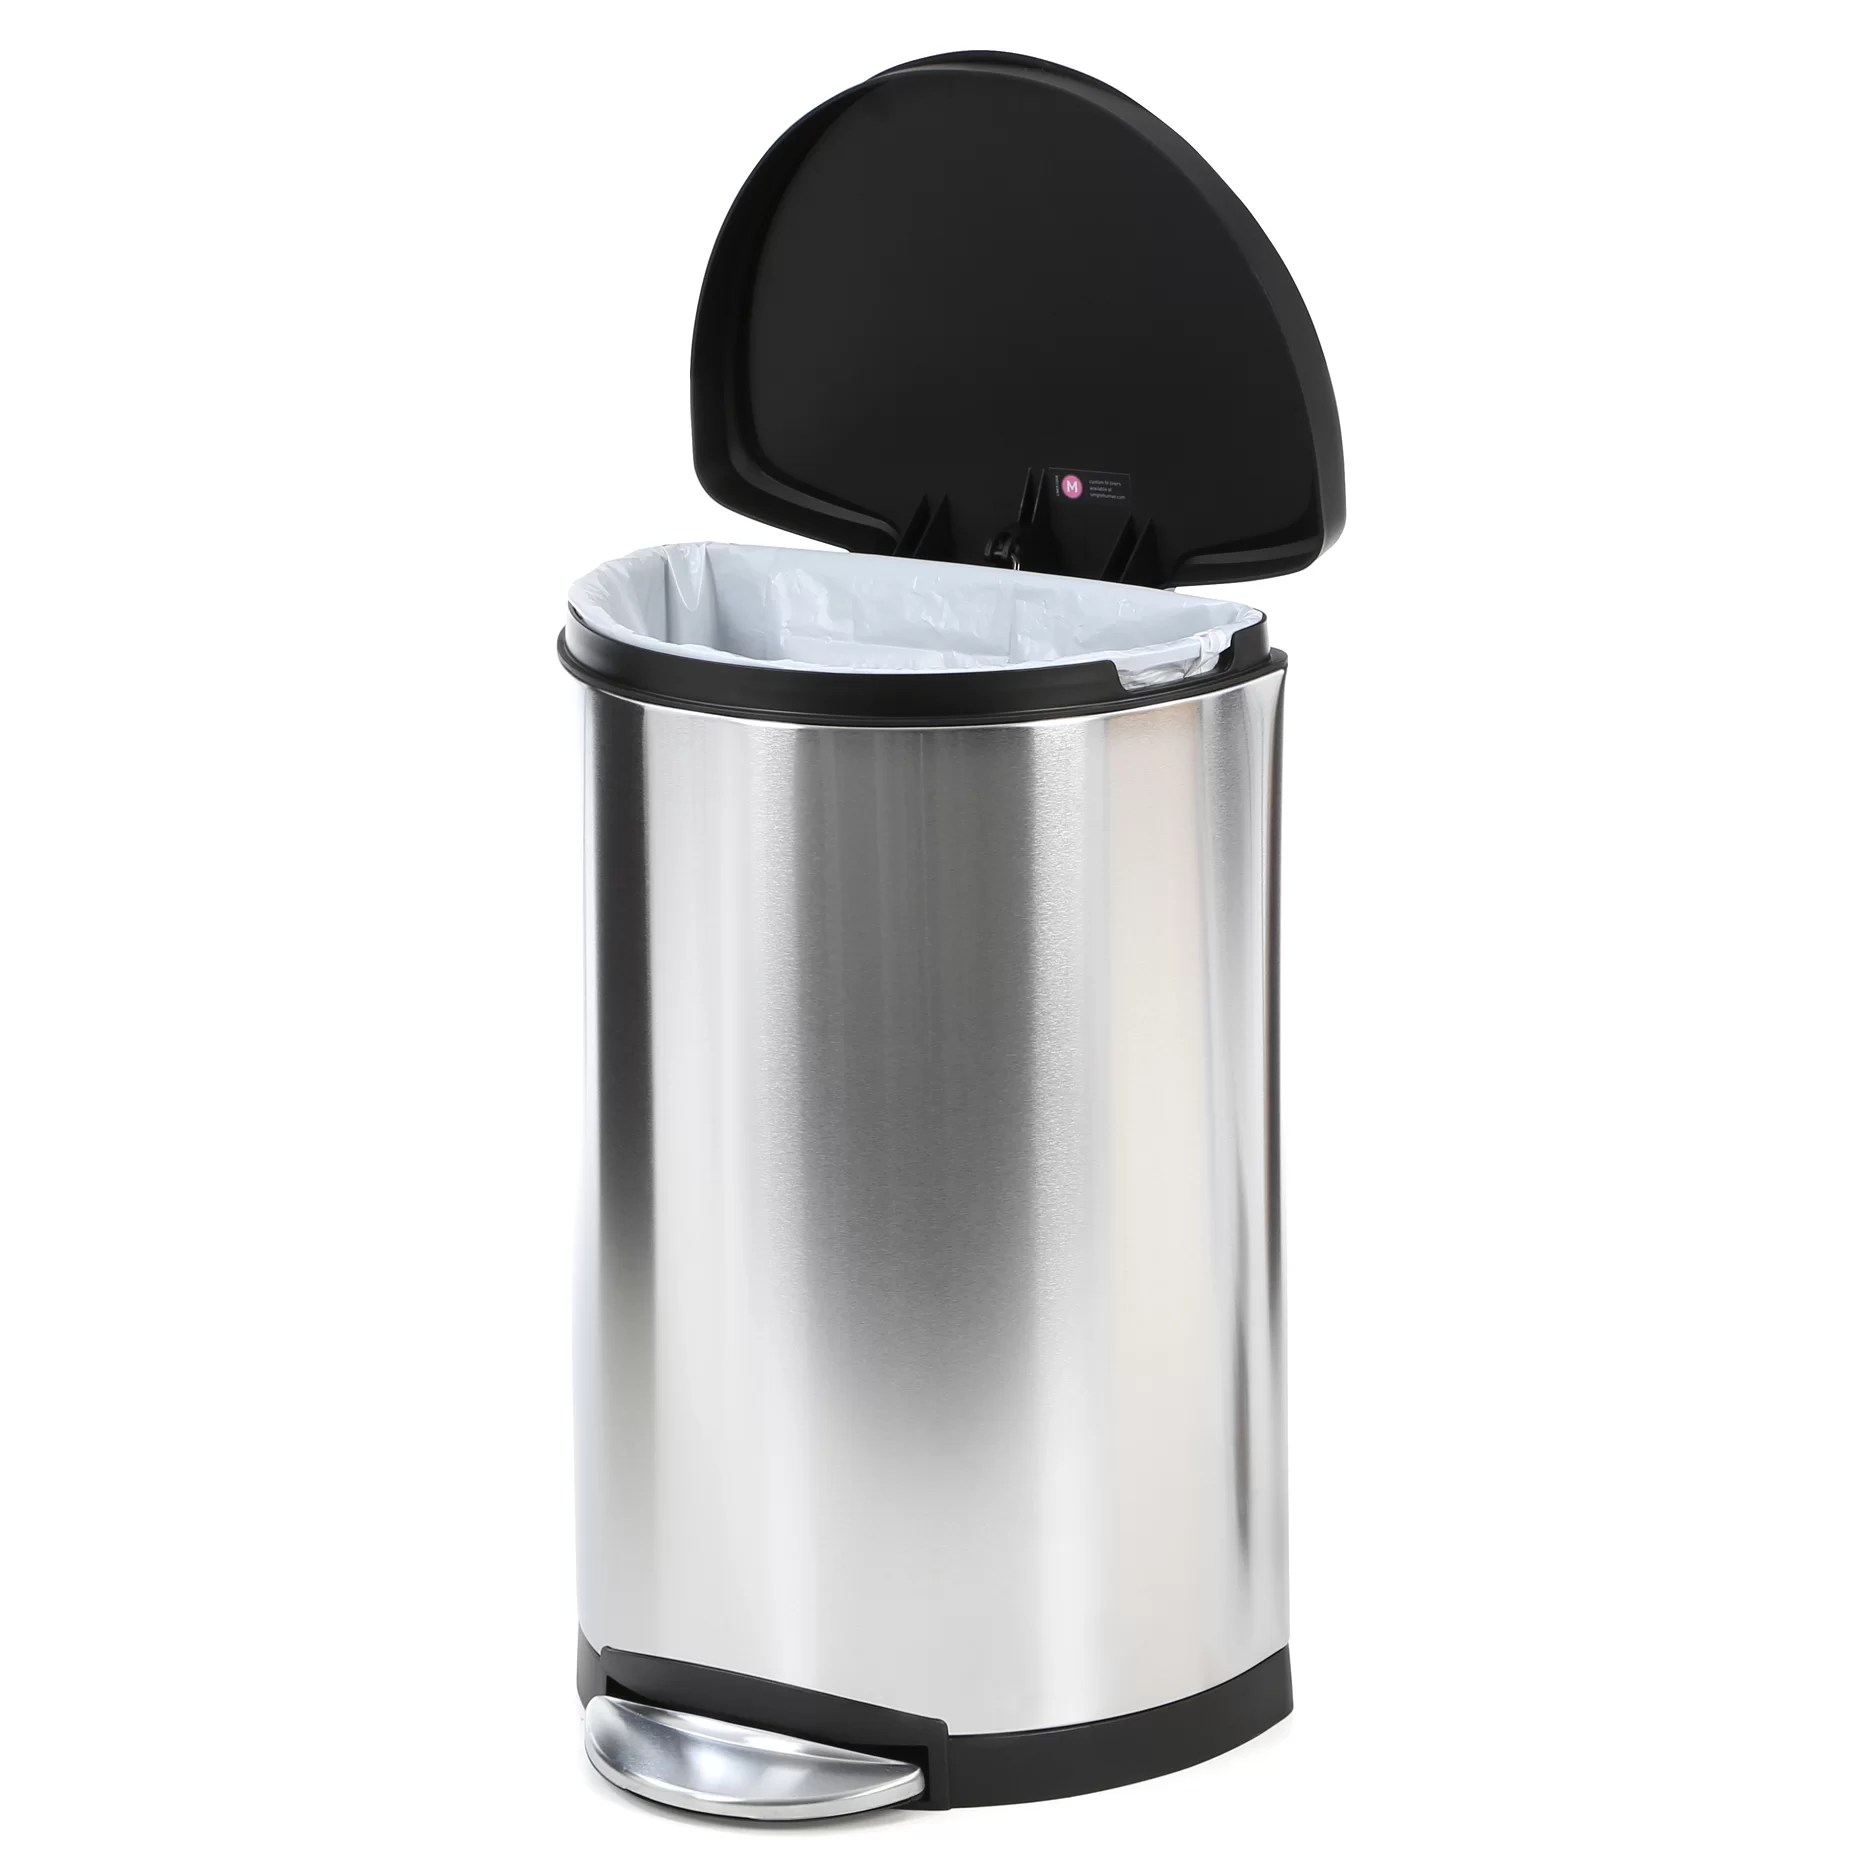 Black Bathroom Wastebasket Simplehuman 10 5 Gallon Step On Stainless Steel Trash Can